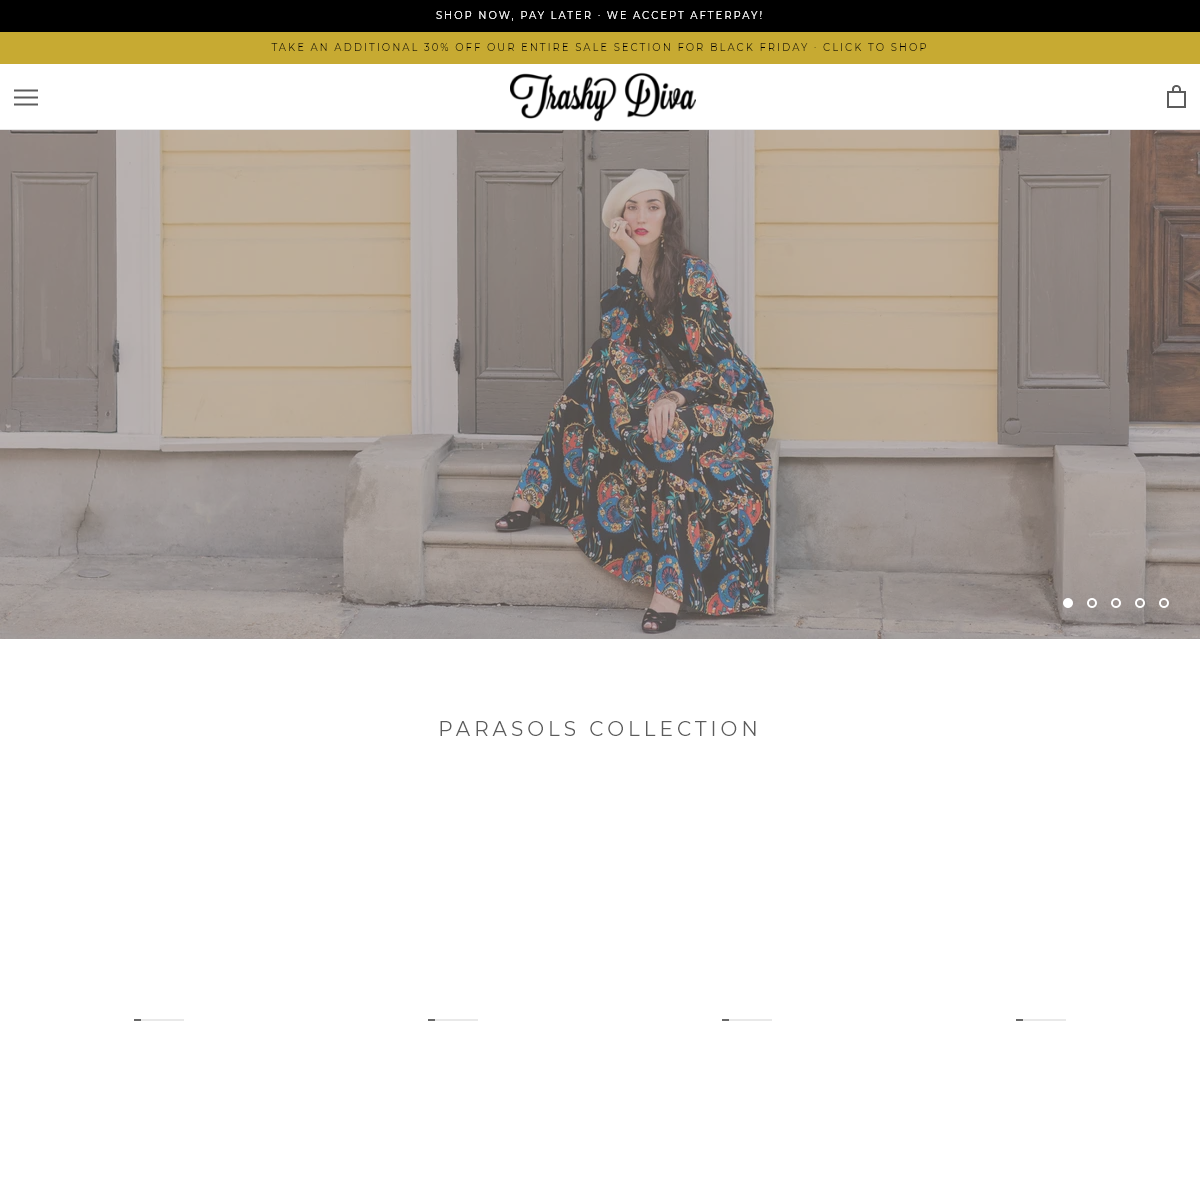 Trashy Diva - Size 0-24 Vintage Inspired Clothing and Accessories